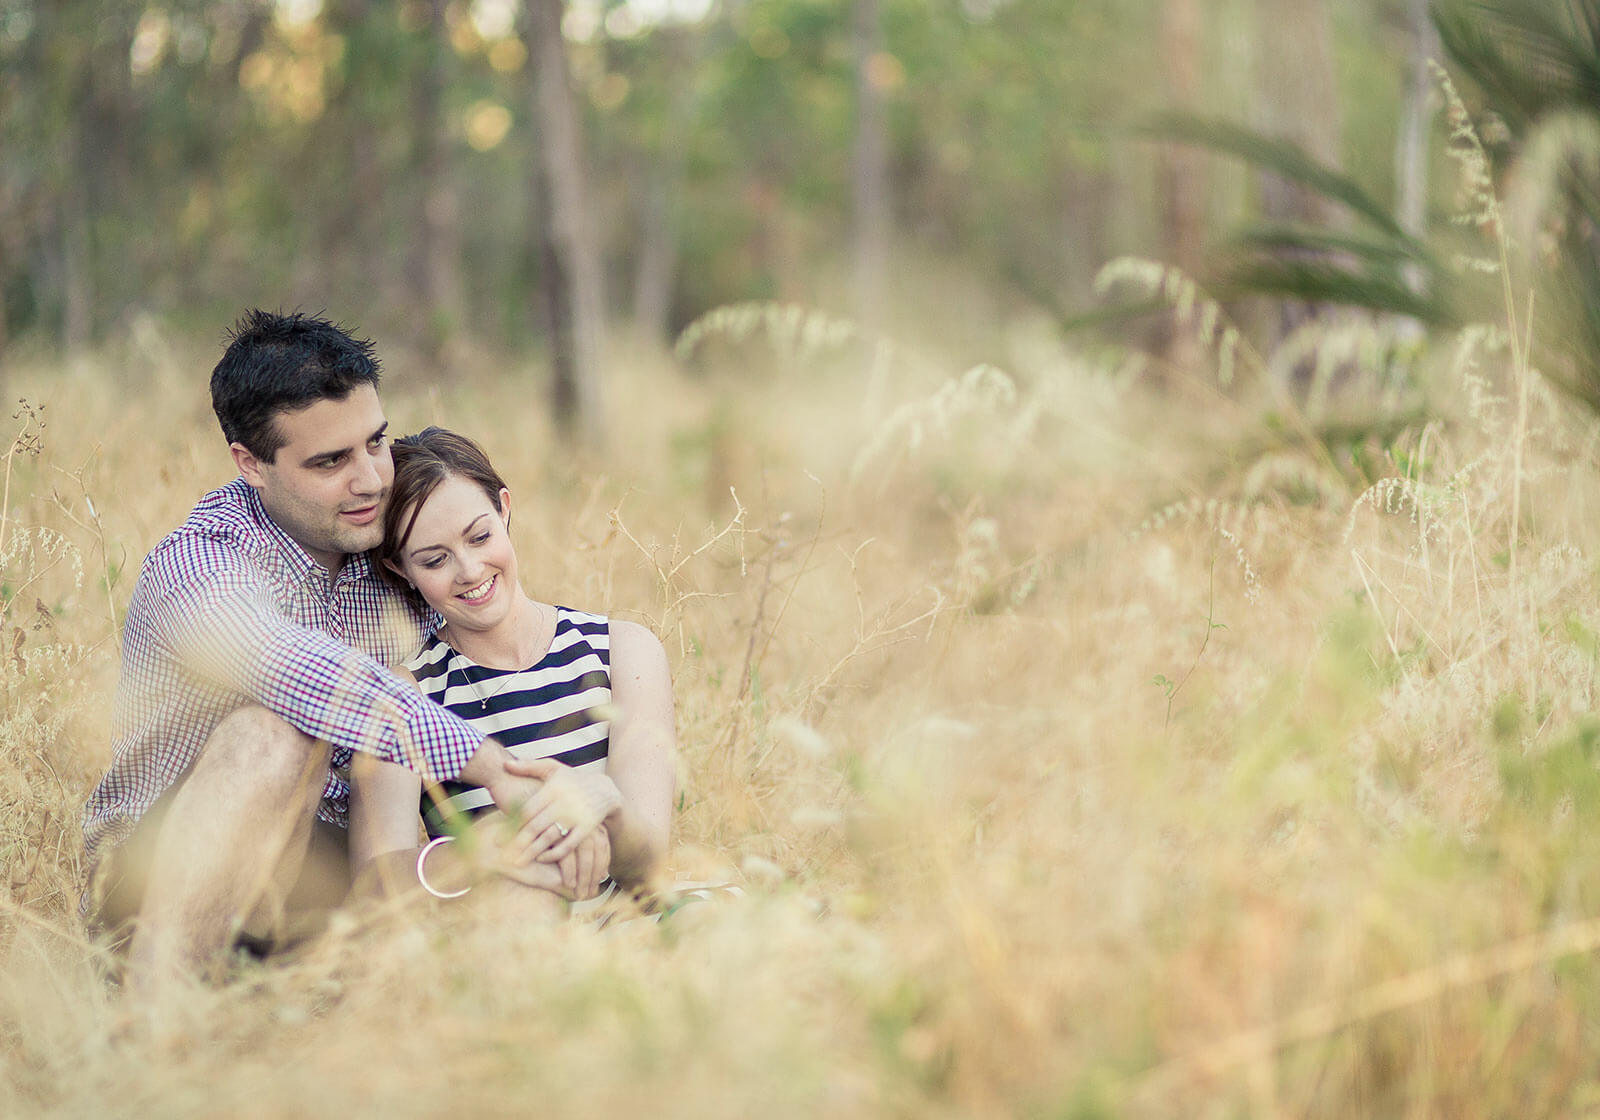 Engagement Photography in Edgewater, Perth